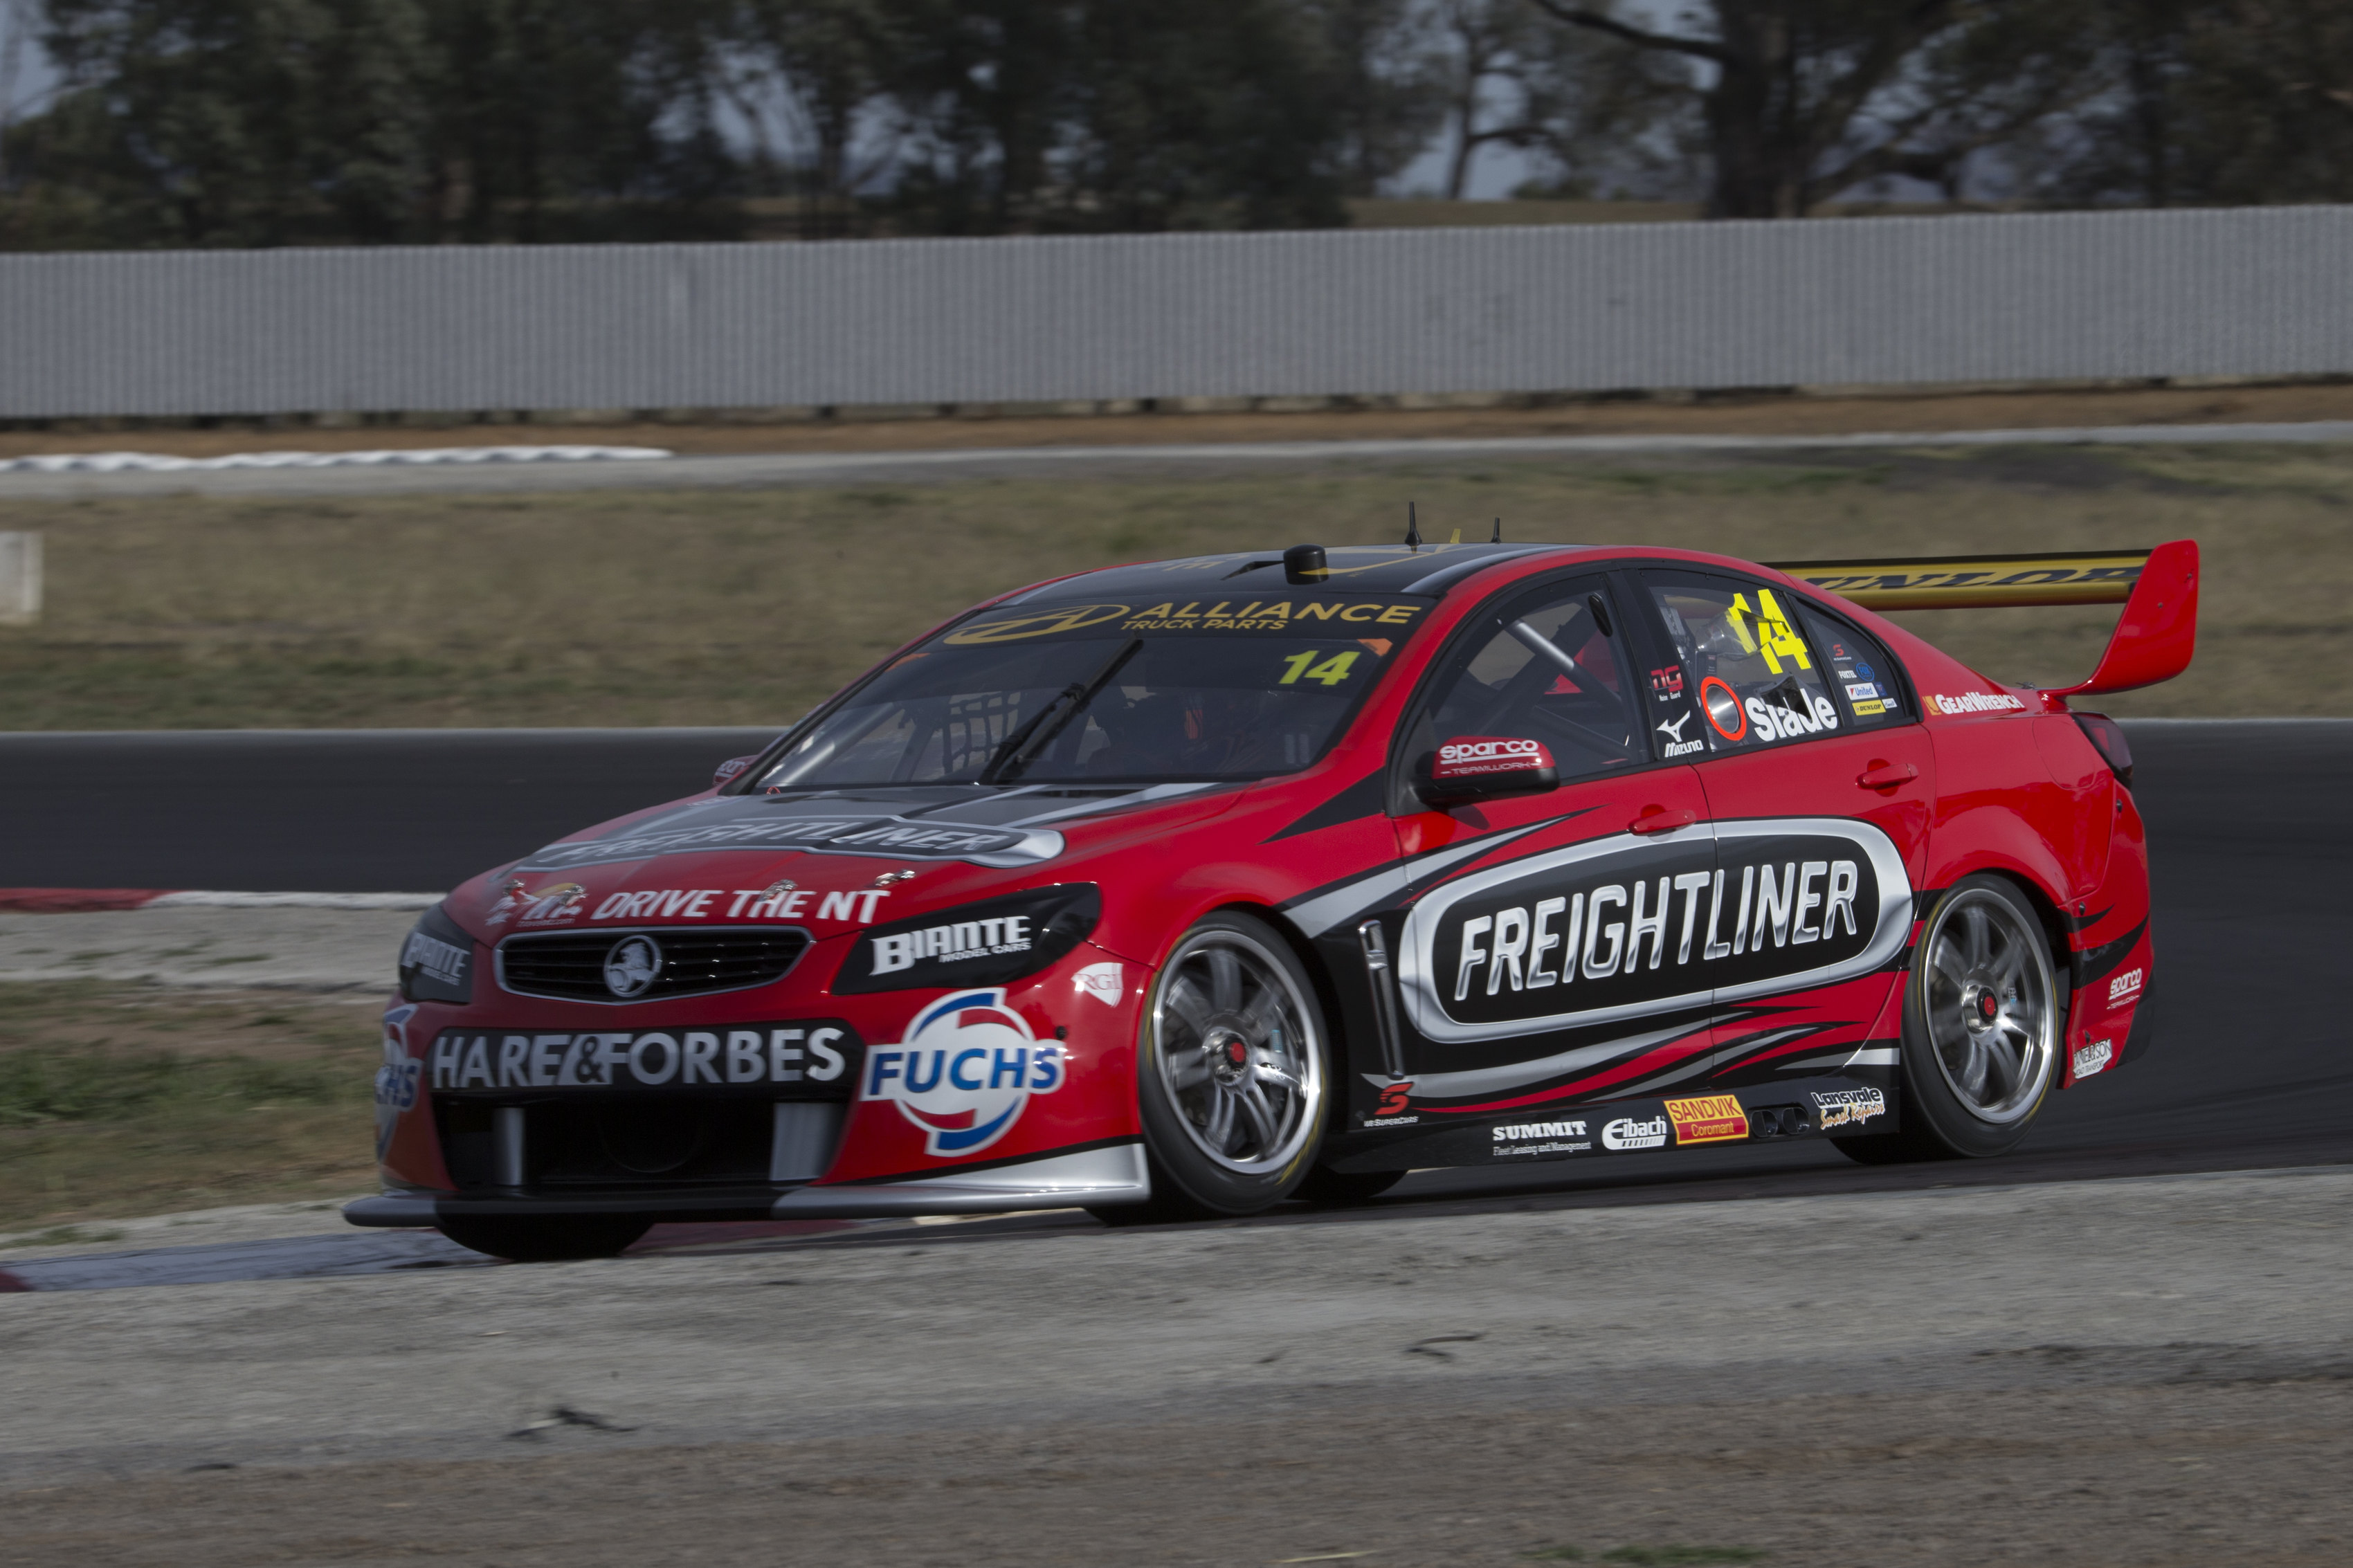 Tim Slade during the V8 Supercars test day, in Winton, Australia, February 22, 2016.